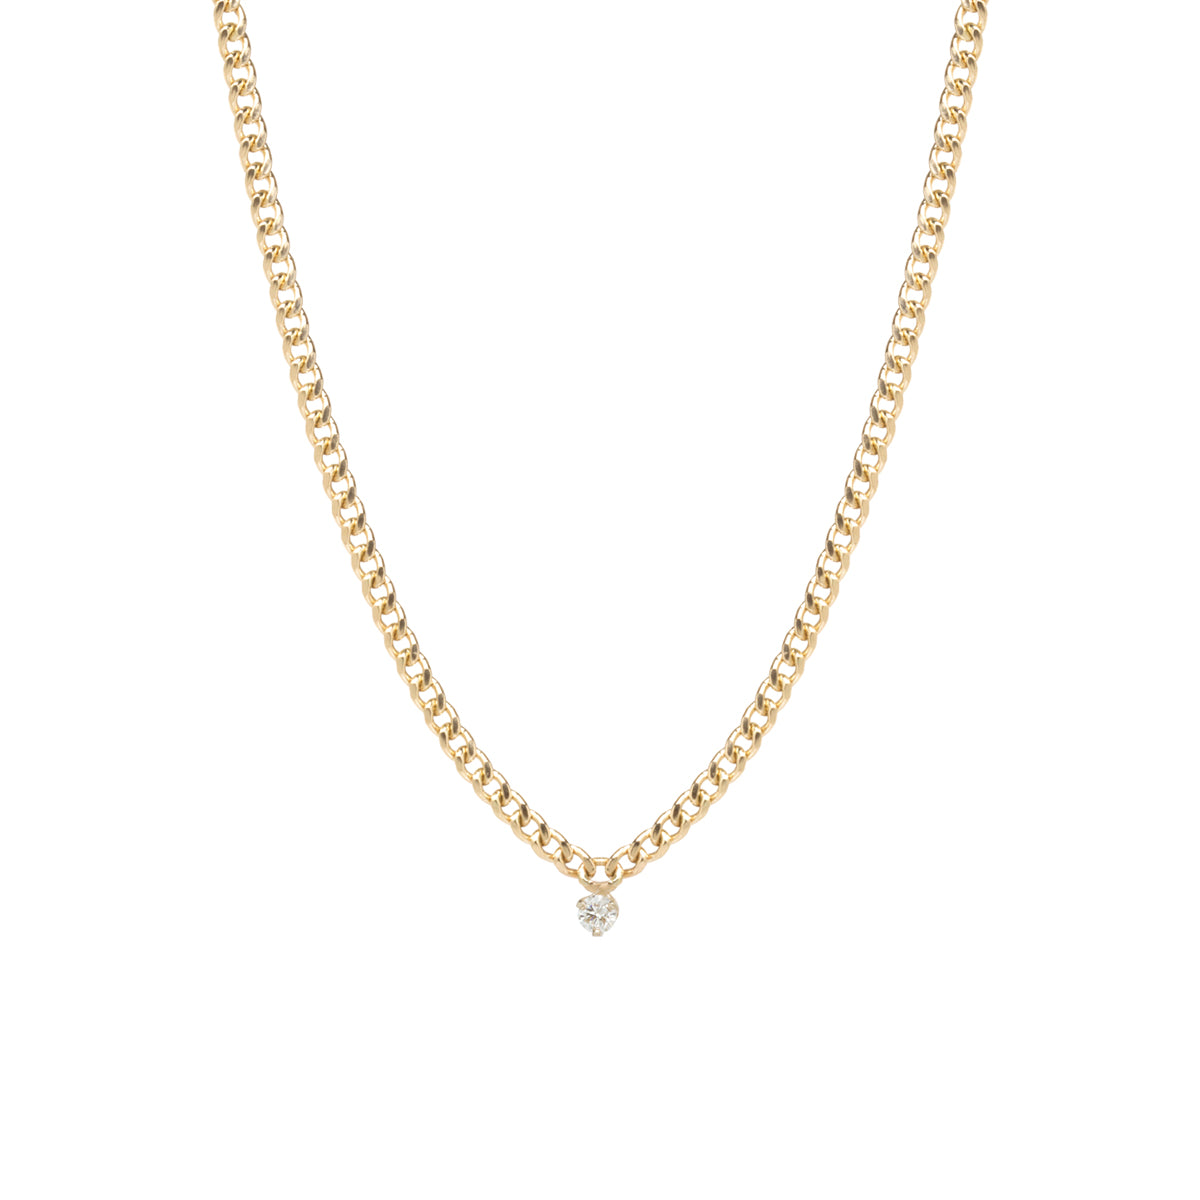 14k small curb chain necklace with single prong diamond